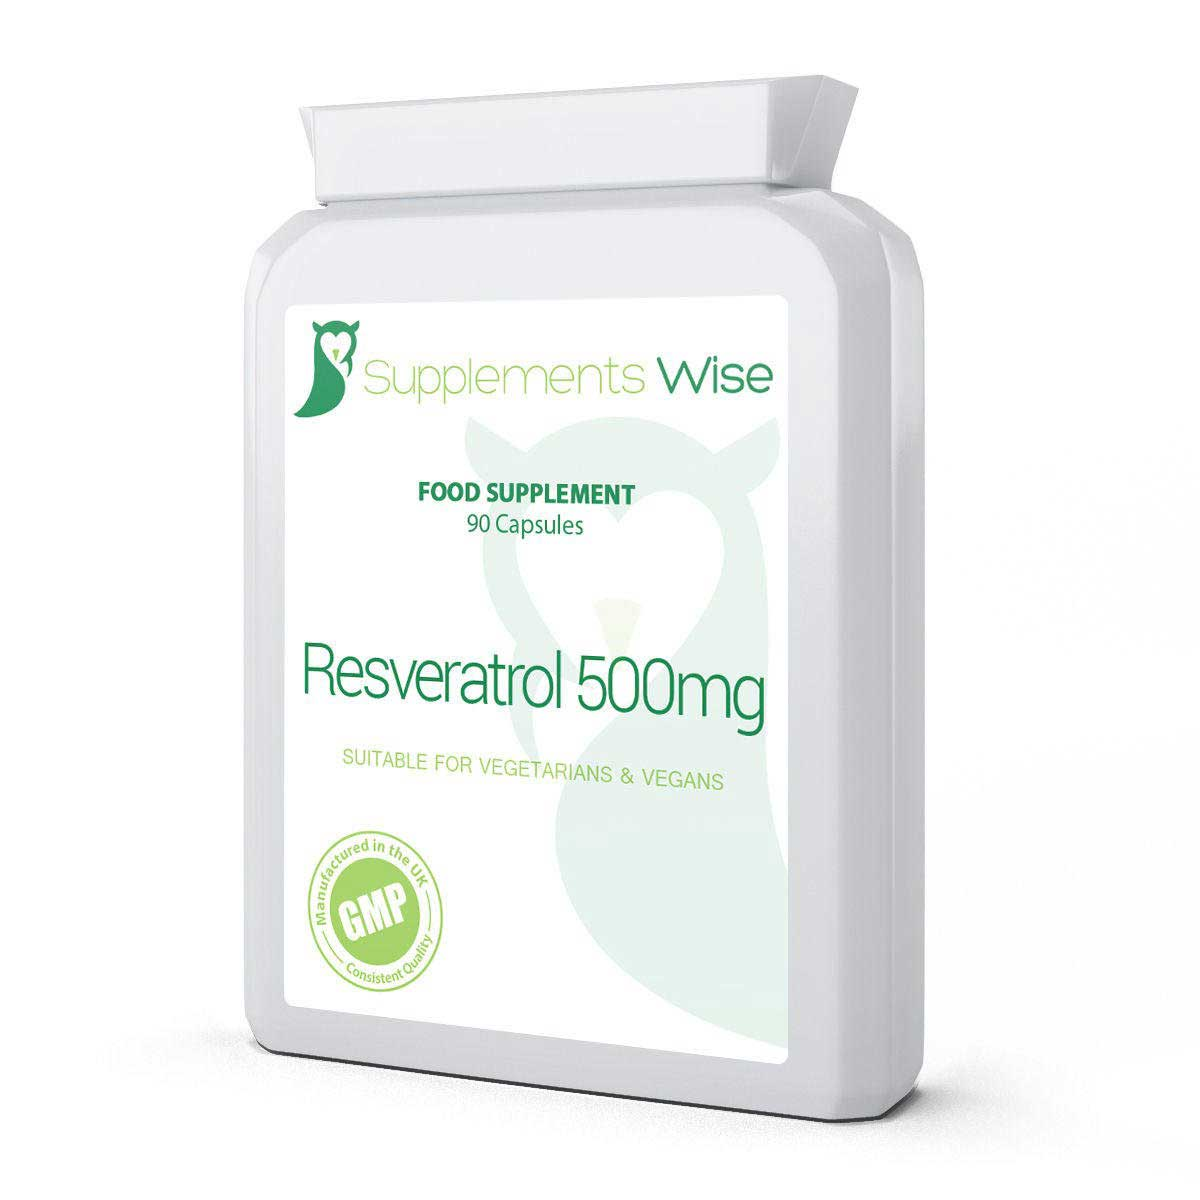 Resveratrol Capsules 90 X 500mg Supplements Wise